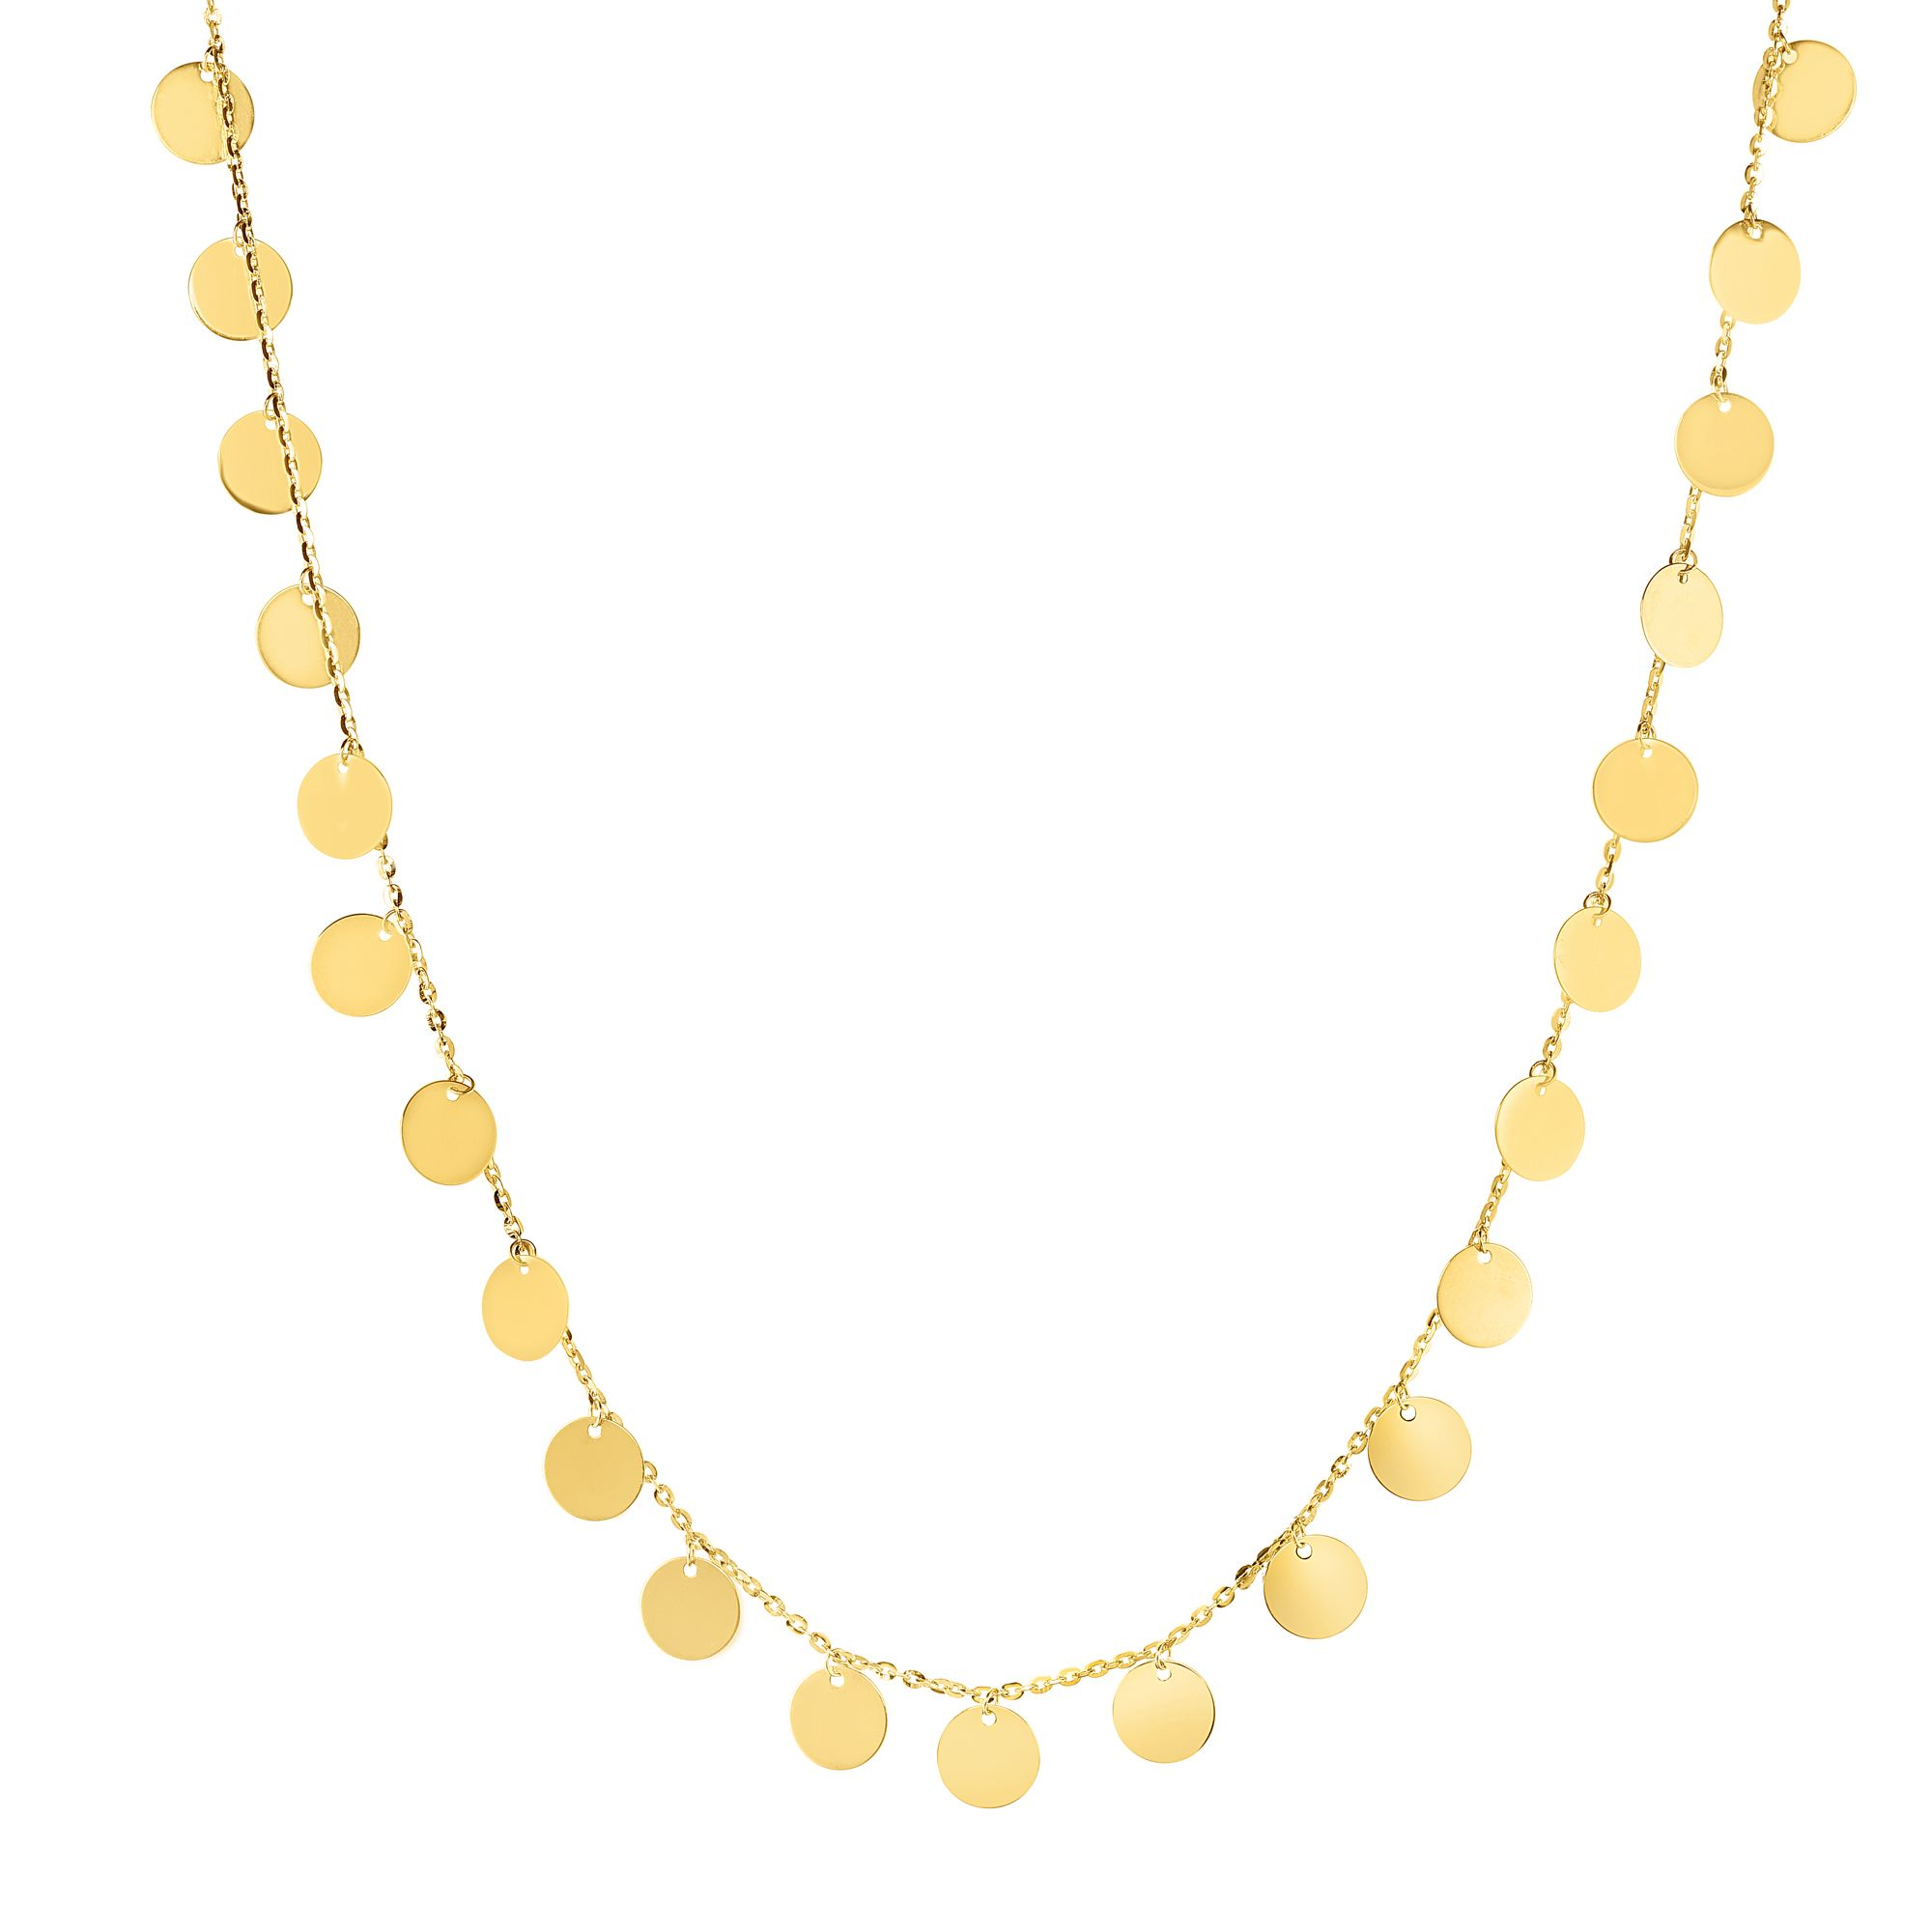 """14k Shiny Yellow Gold Flat Round Discs Choker Necklace, Lobster Clasp 14-16"""" by JewelStop"""